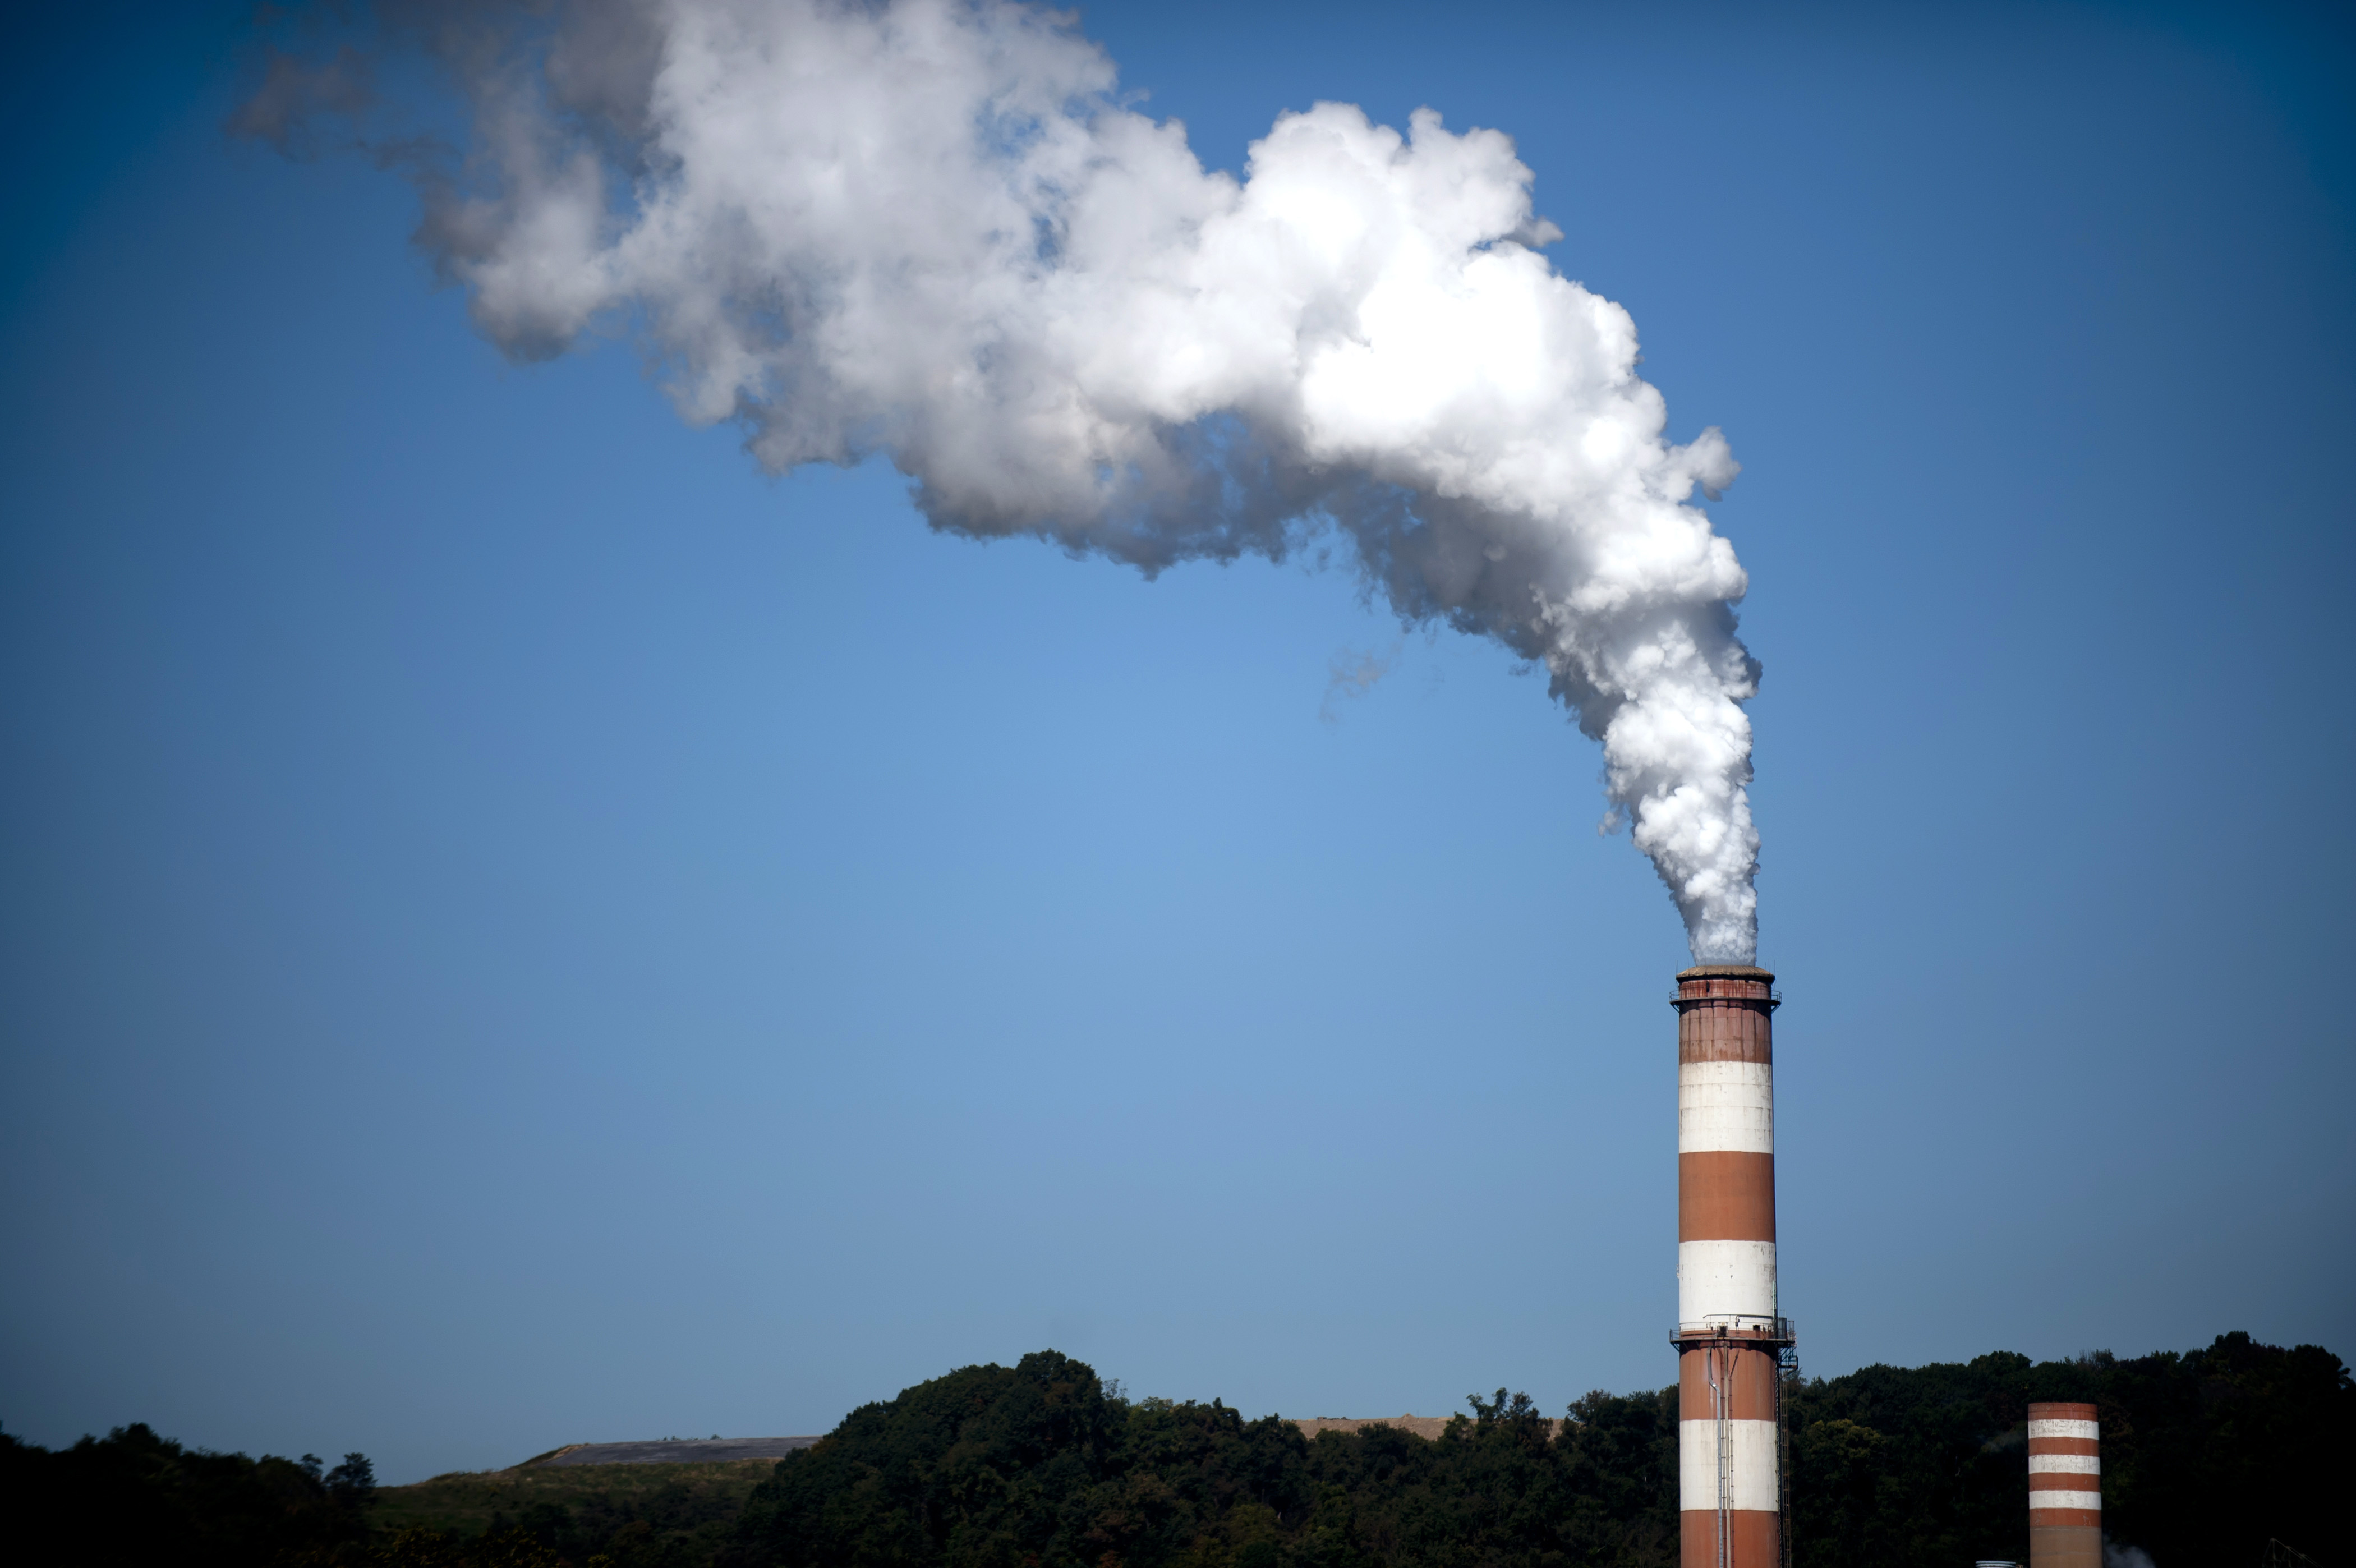 A plume of exhaust extends from the Mitchell Power Station, a coal-fired power plant built along the Monongahela River, 20 miles southwest of Pittsburgh, on Sept. 24, 2013 in New Eagle, Pennsylvania.